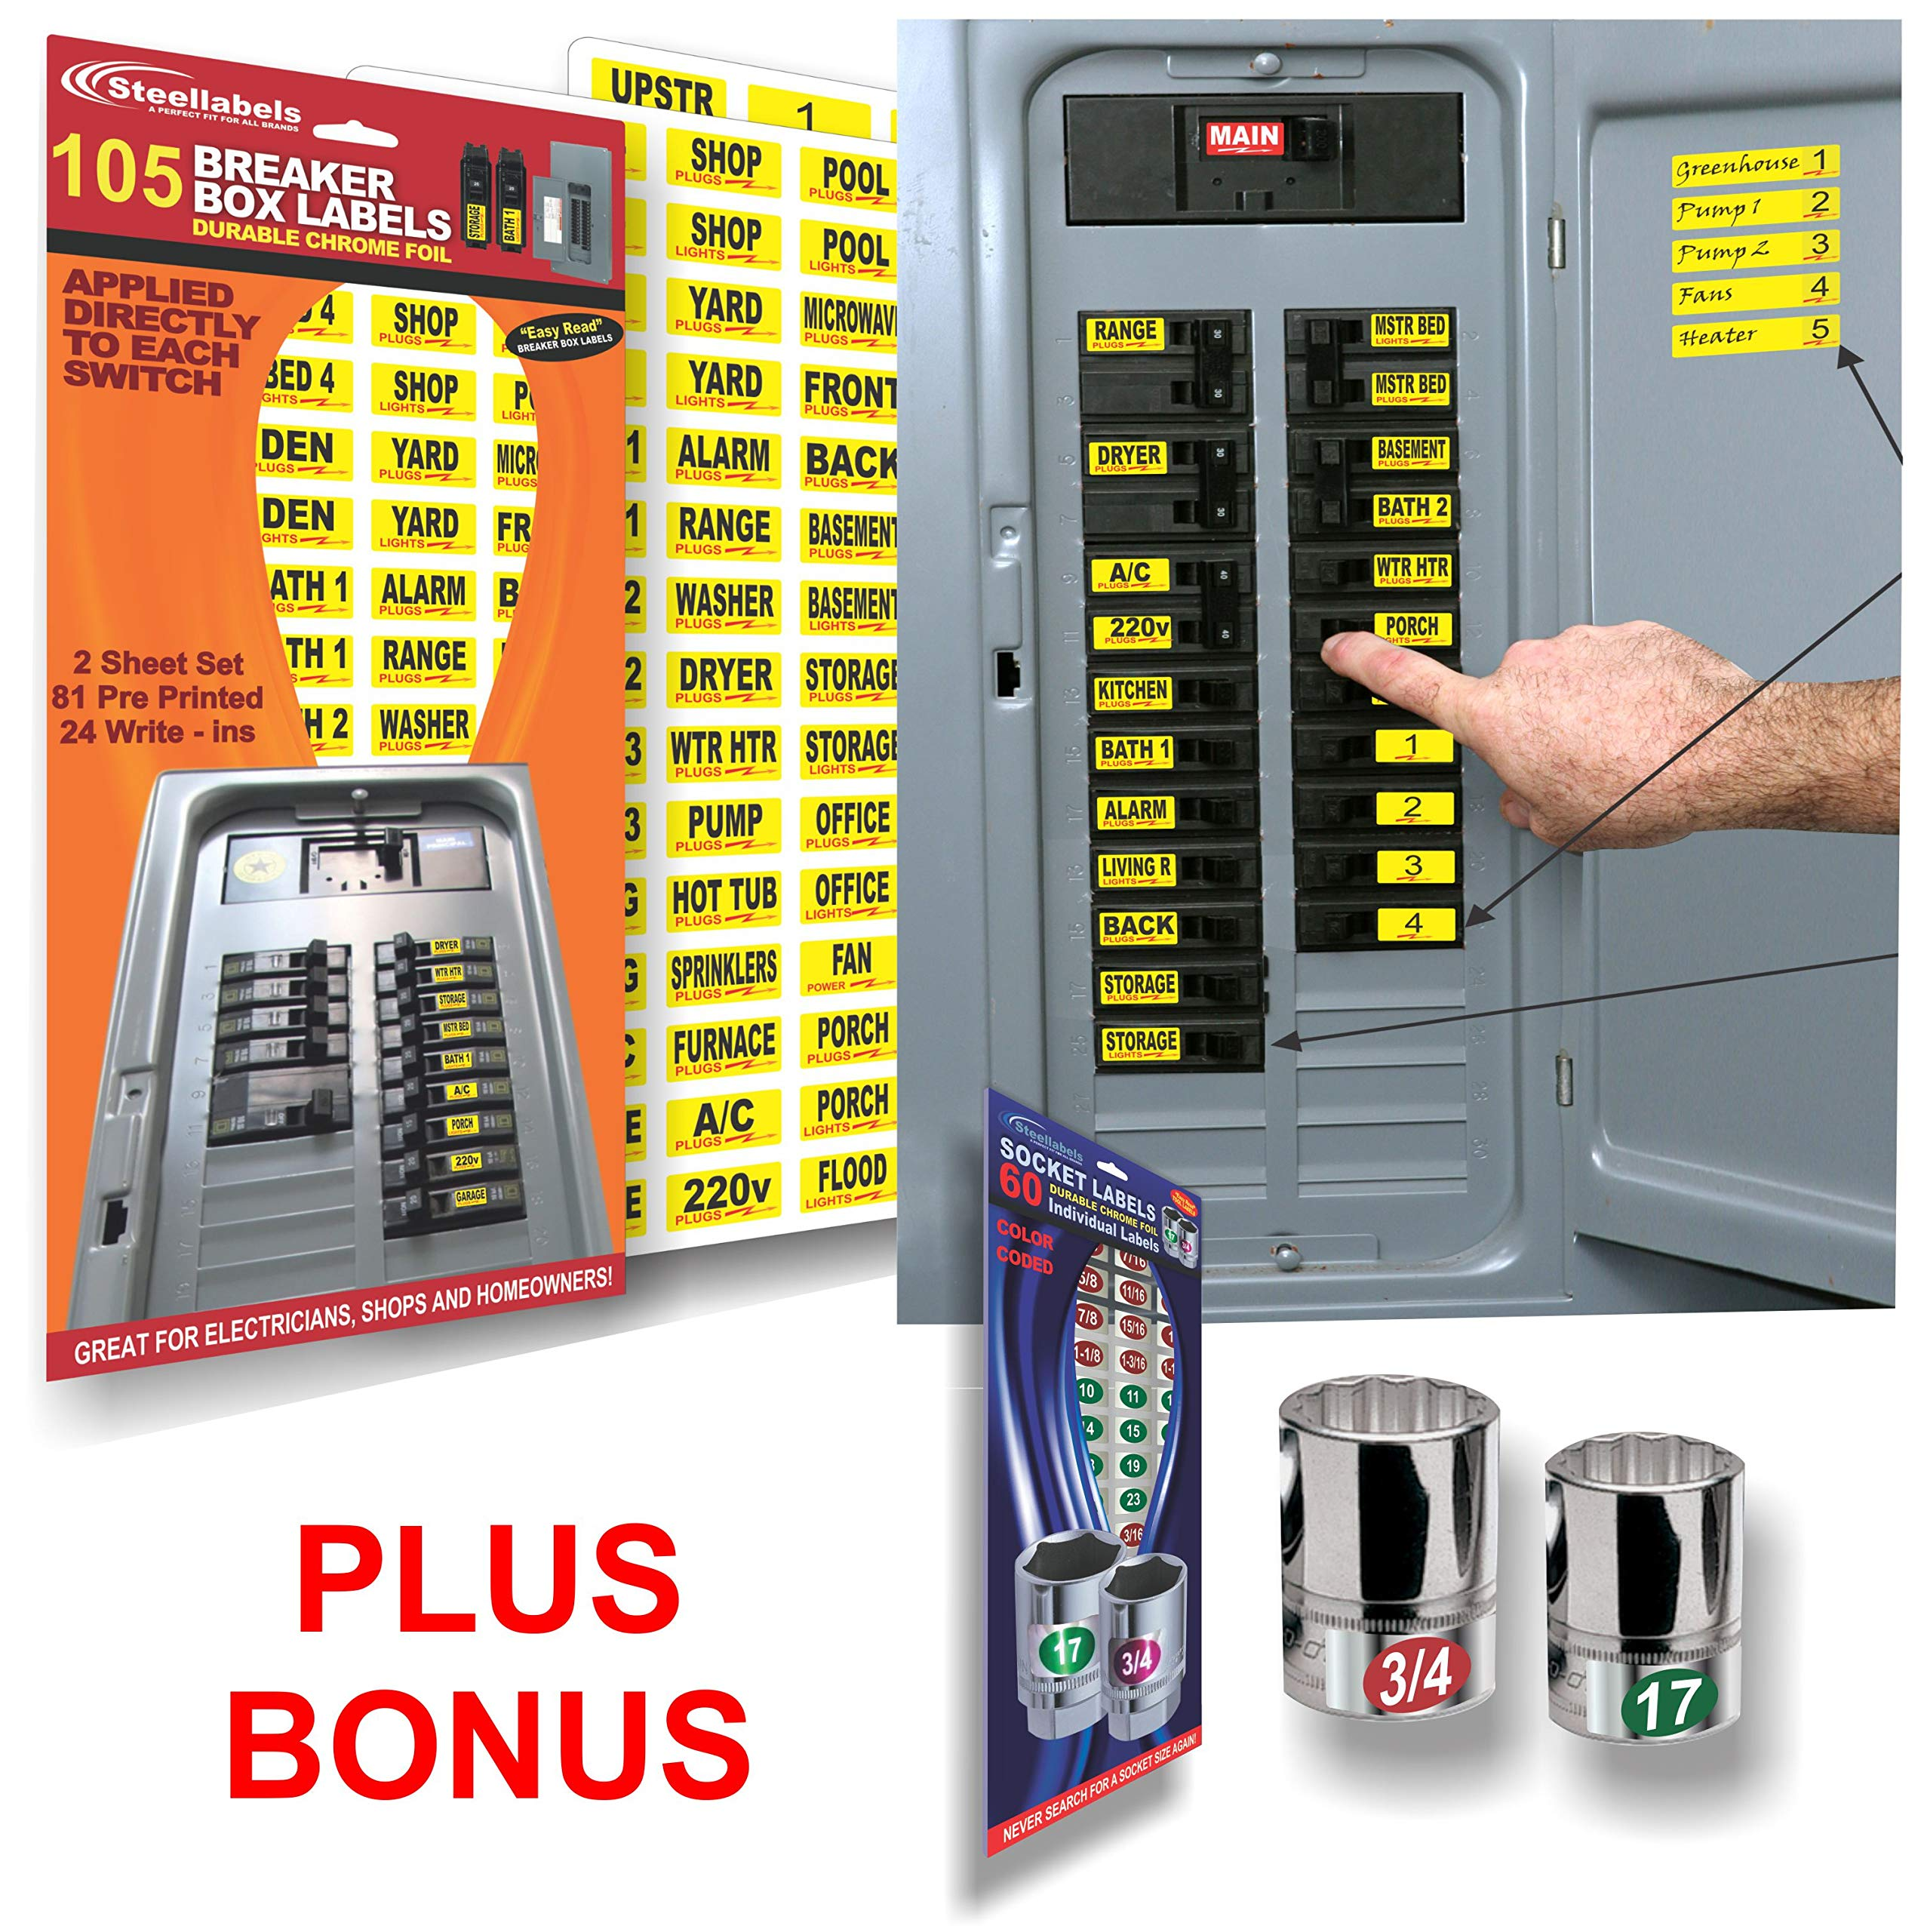 Circuit Breaker ID Tags plus Bonus Chrome Socket Labels for tool organizing, great for Home Owners, Apartments & Electricians, Decals fit all Breaker Panels & Switches, applies directly to the breaker by Steellabels (Image #1)